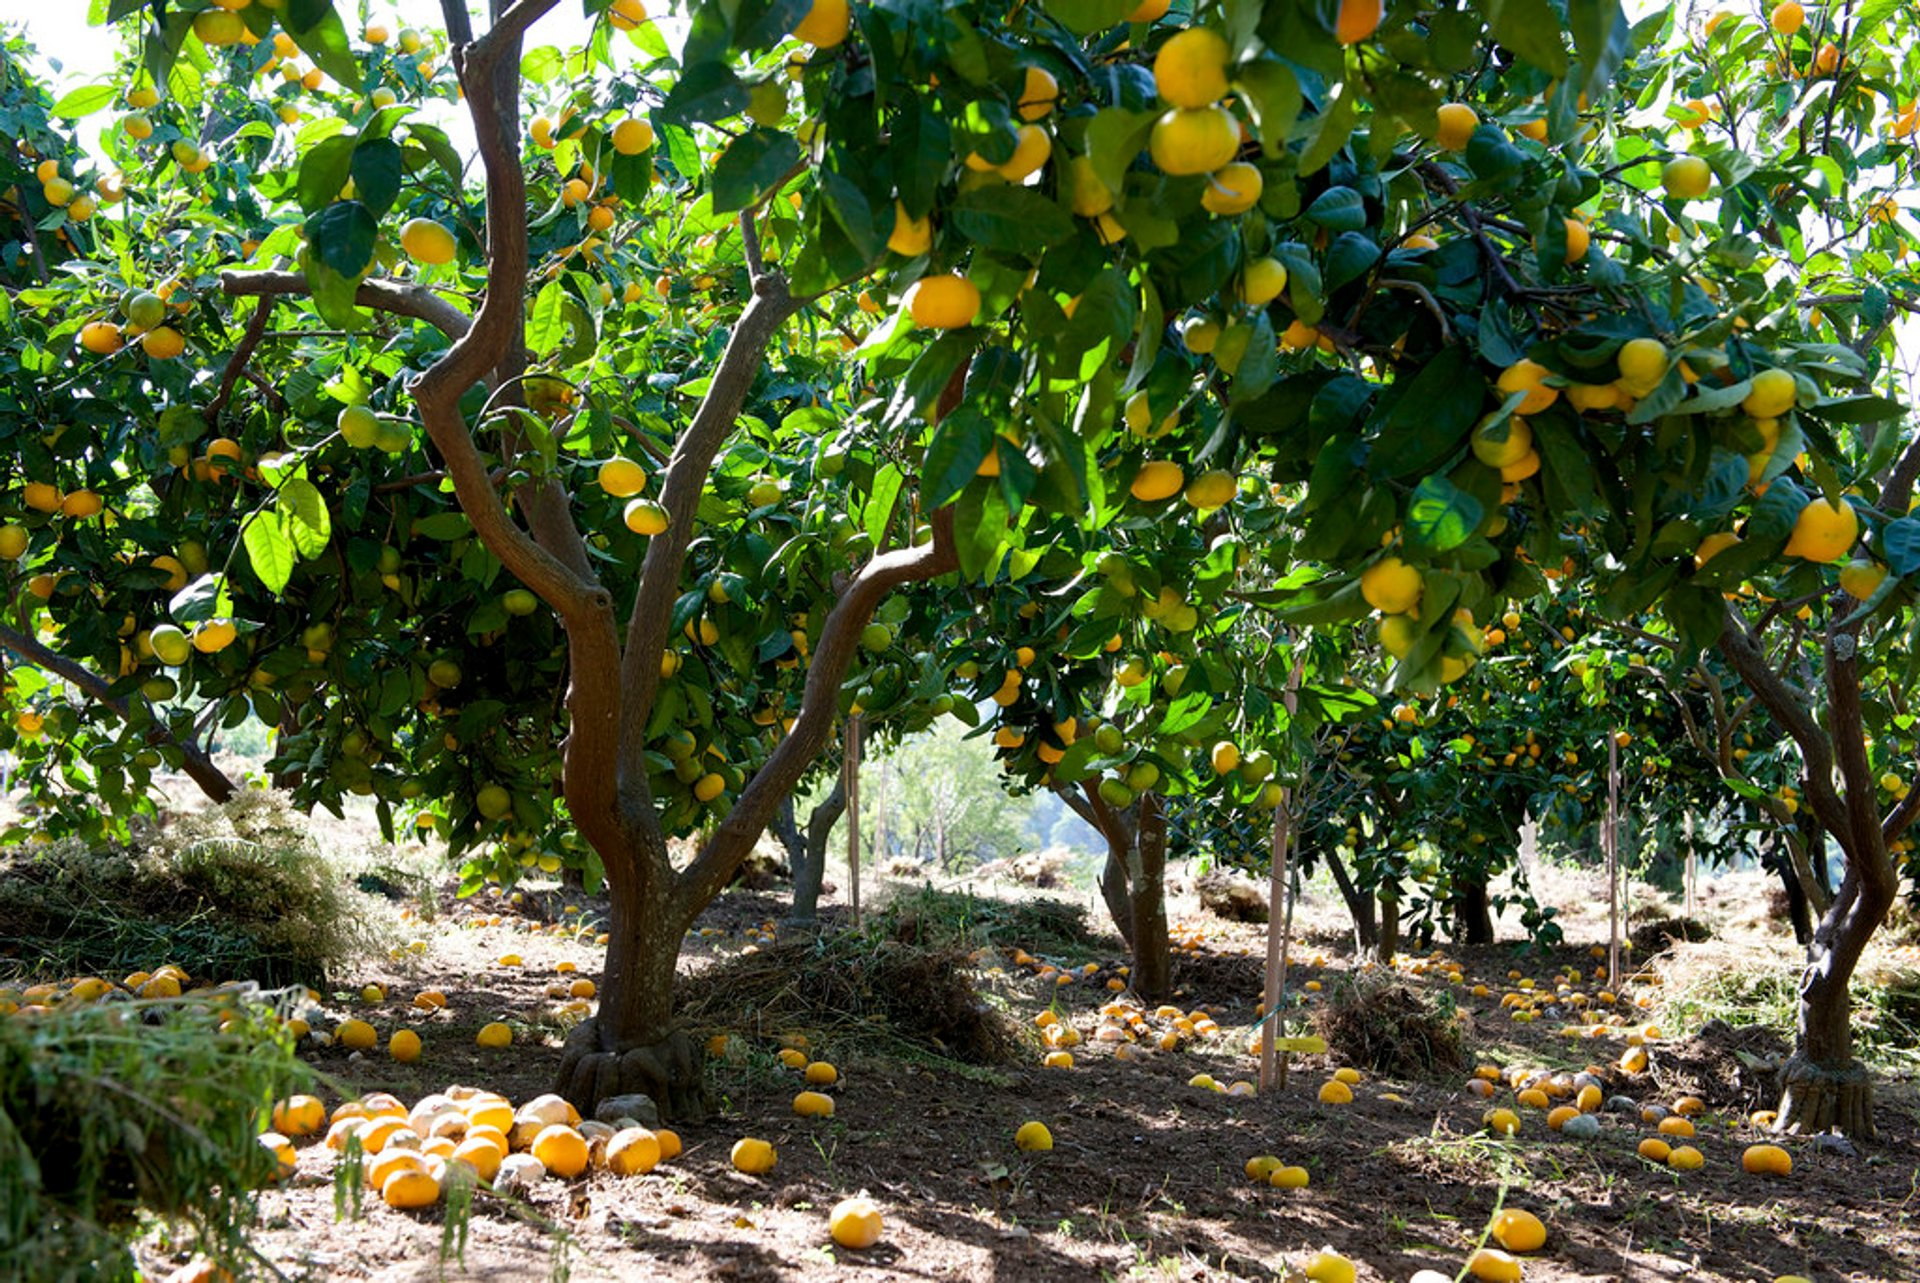 Tangerine Harvesting Season in Croatia 2019 - Best Time